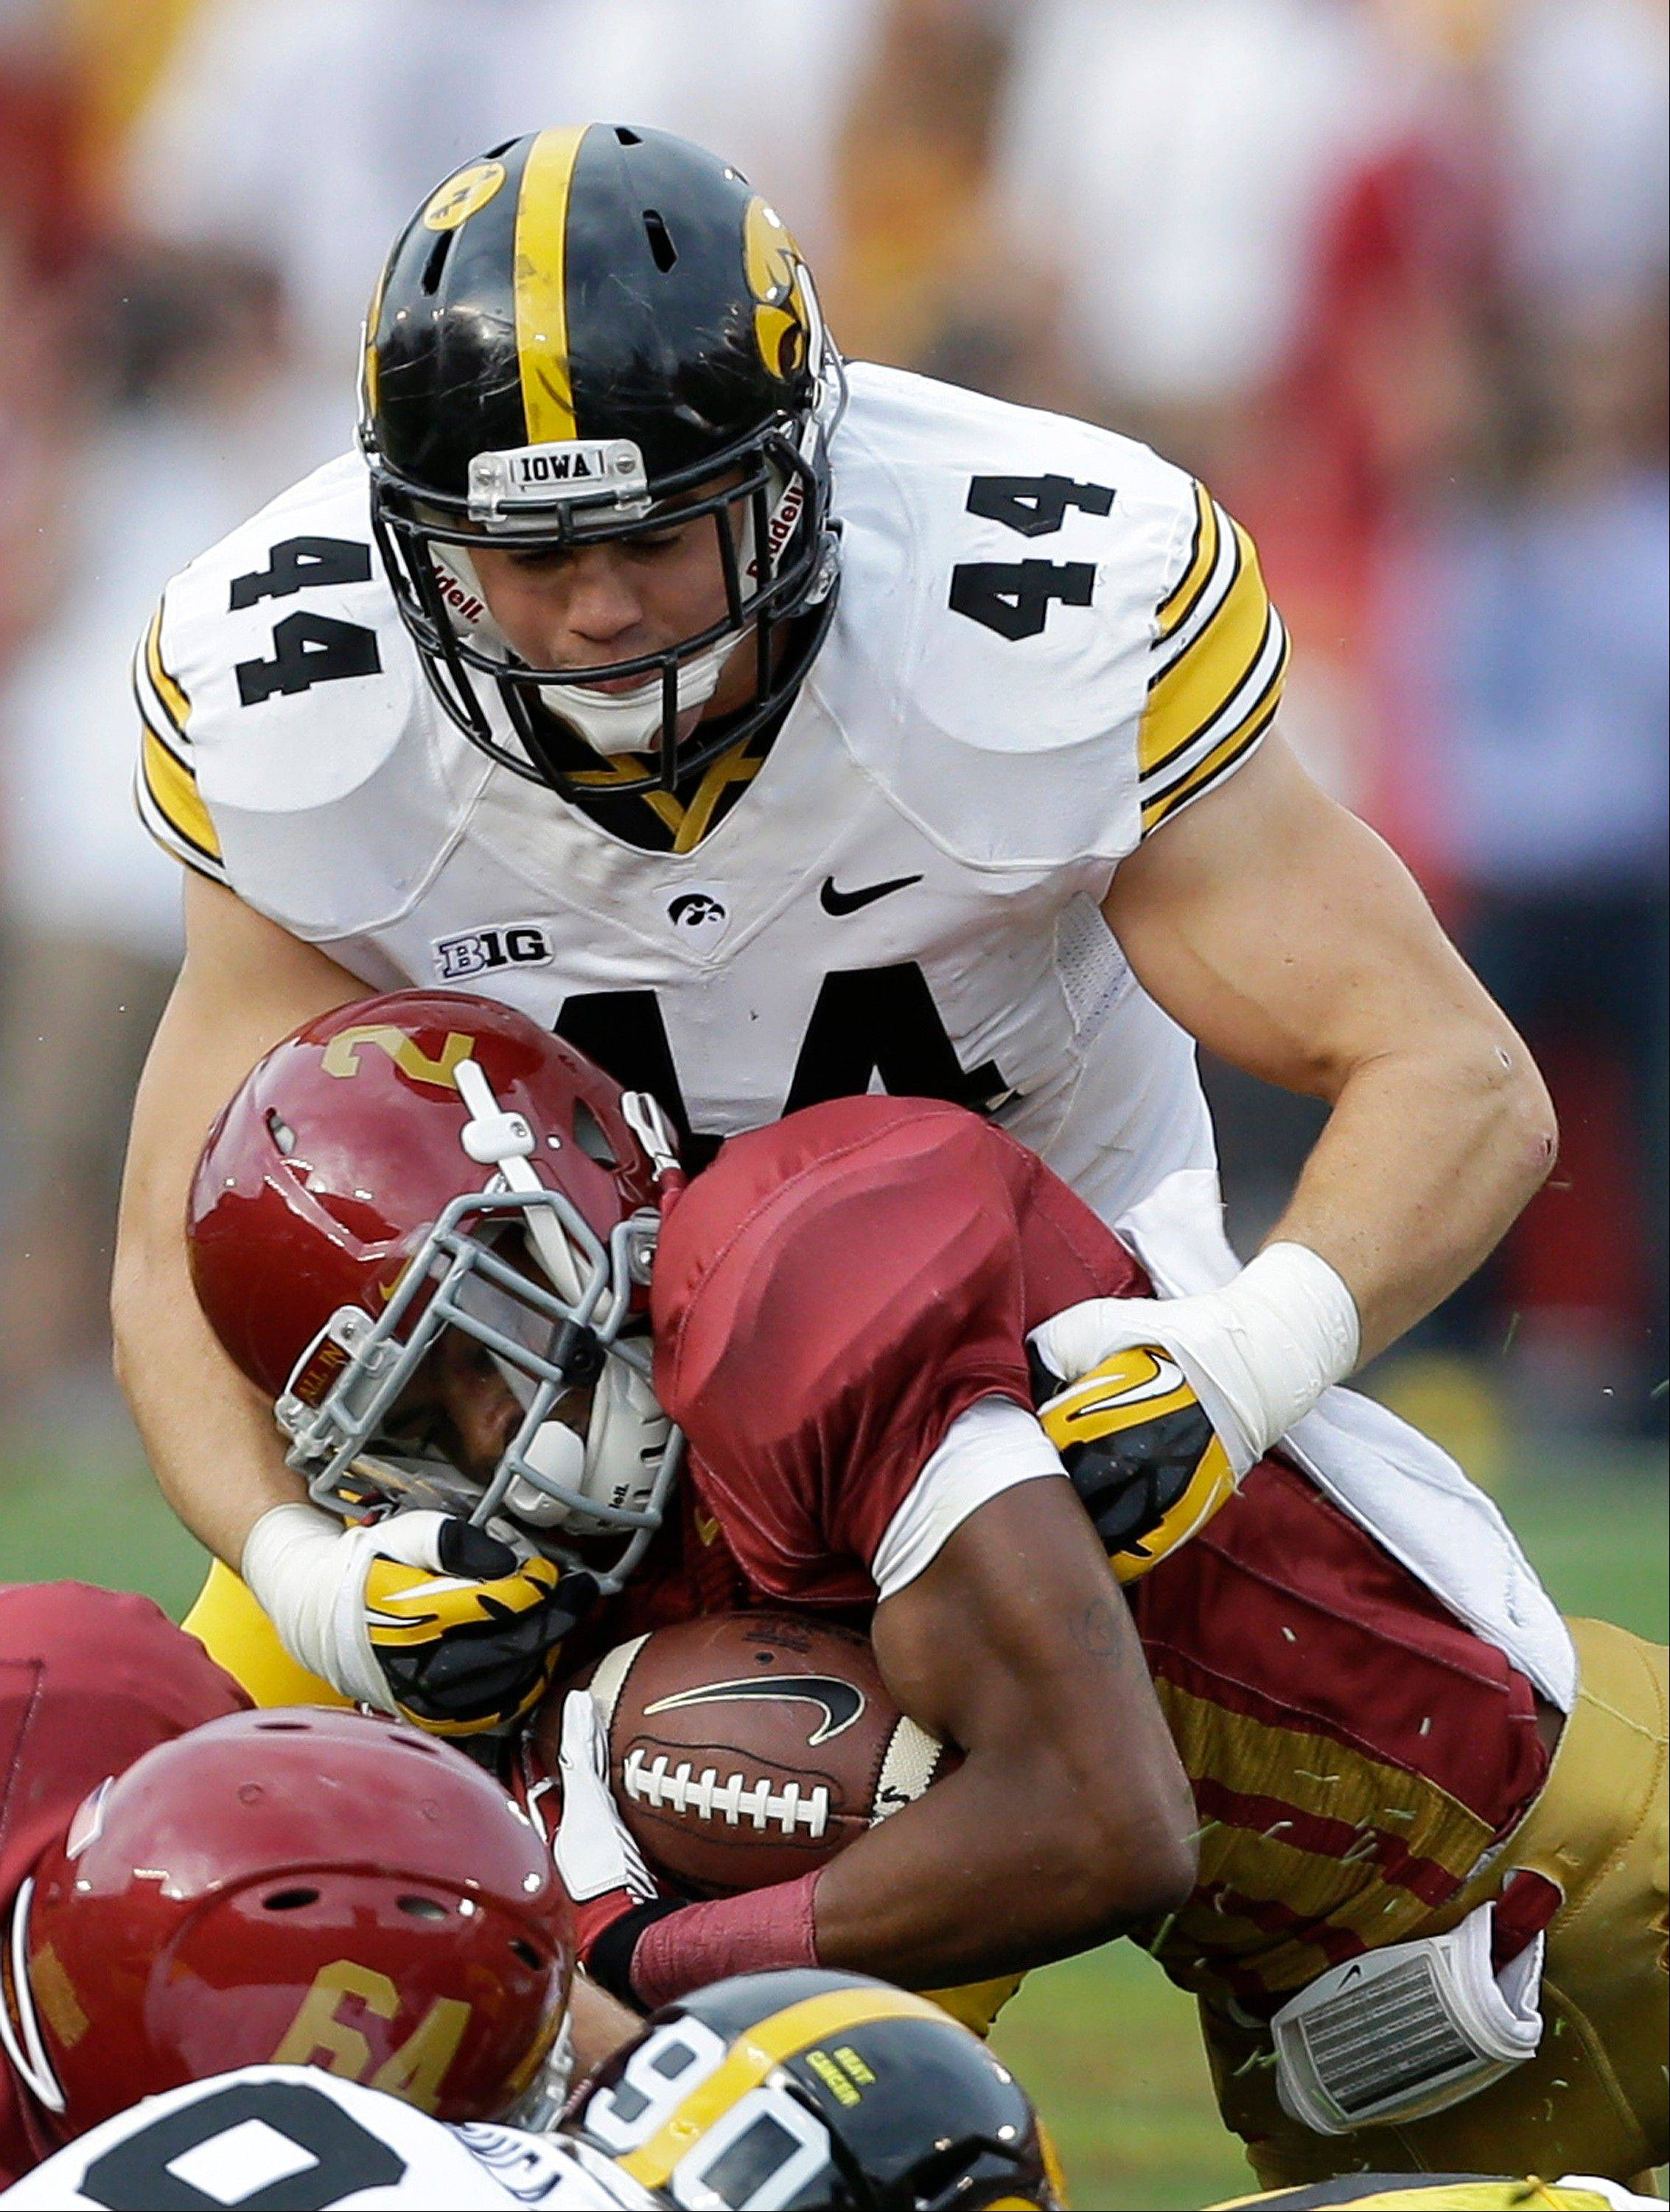 Iowa linebacker James Morris tackles Iowa State running back Aaron Wimberly during the